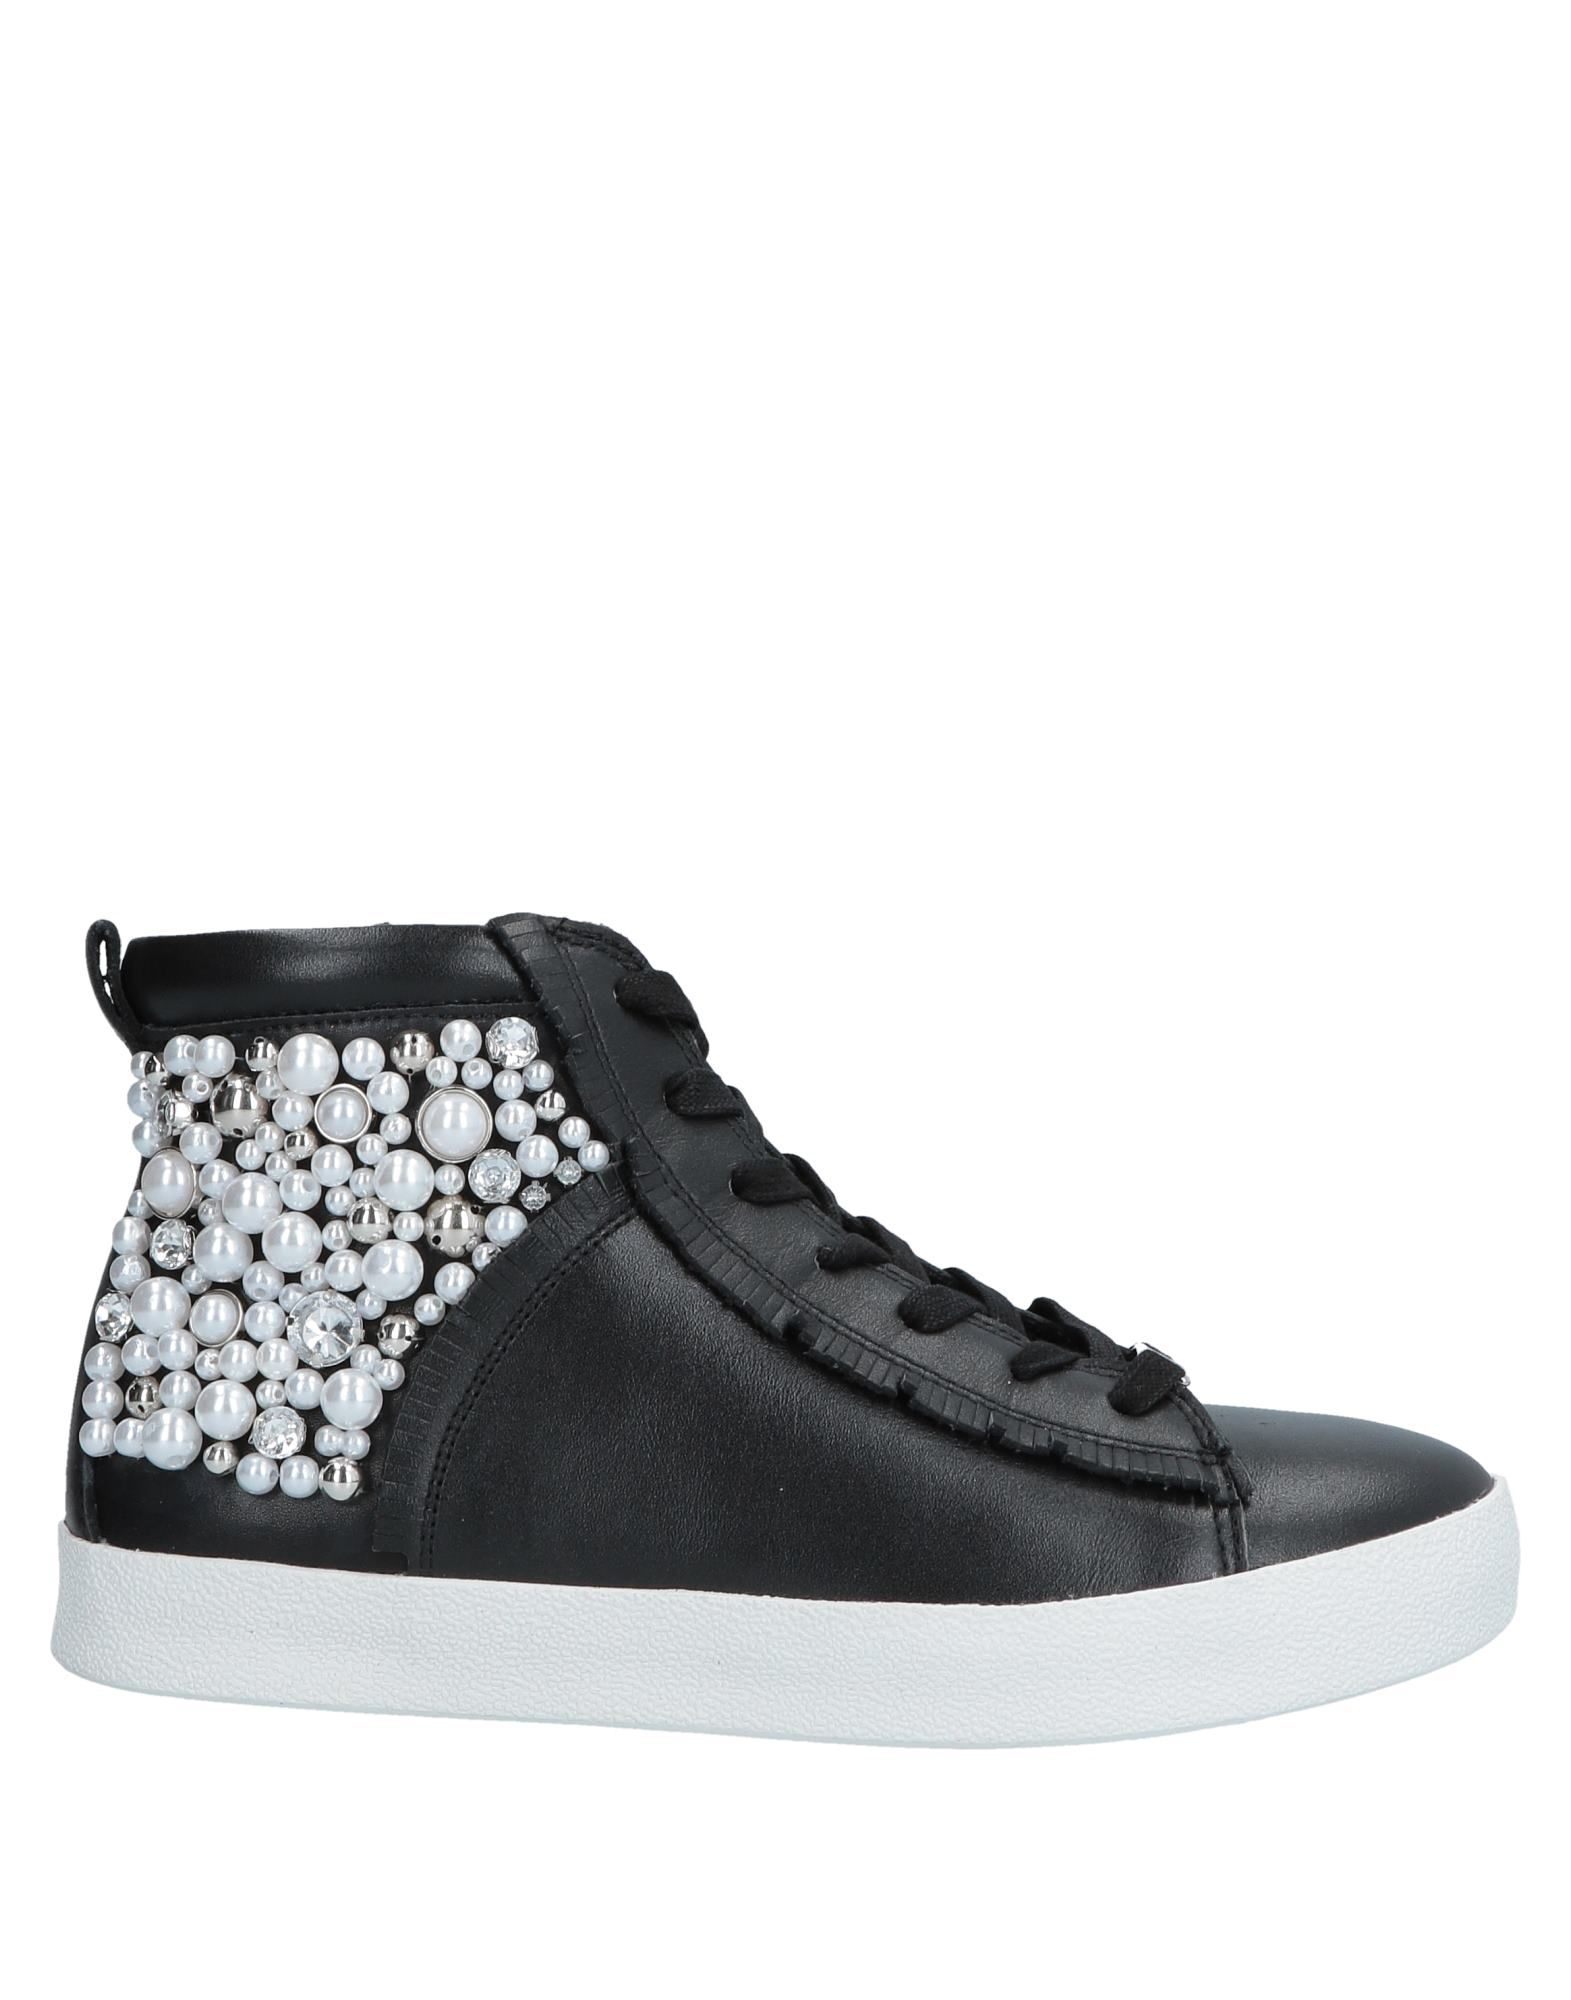 Steve Madden Madden Sneakers - Women Steve Madden Madden Sneakers online on  United Kingdom - 11570289IA 8180da